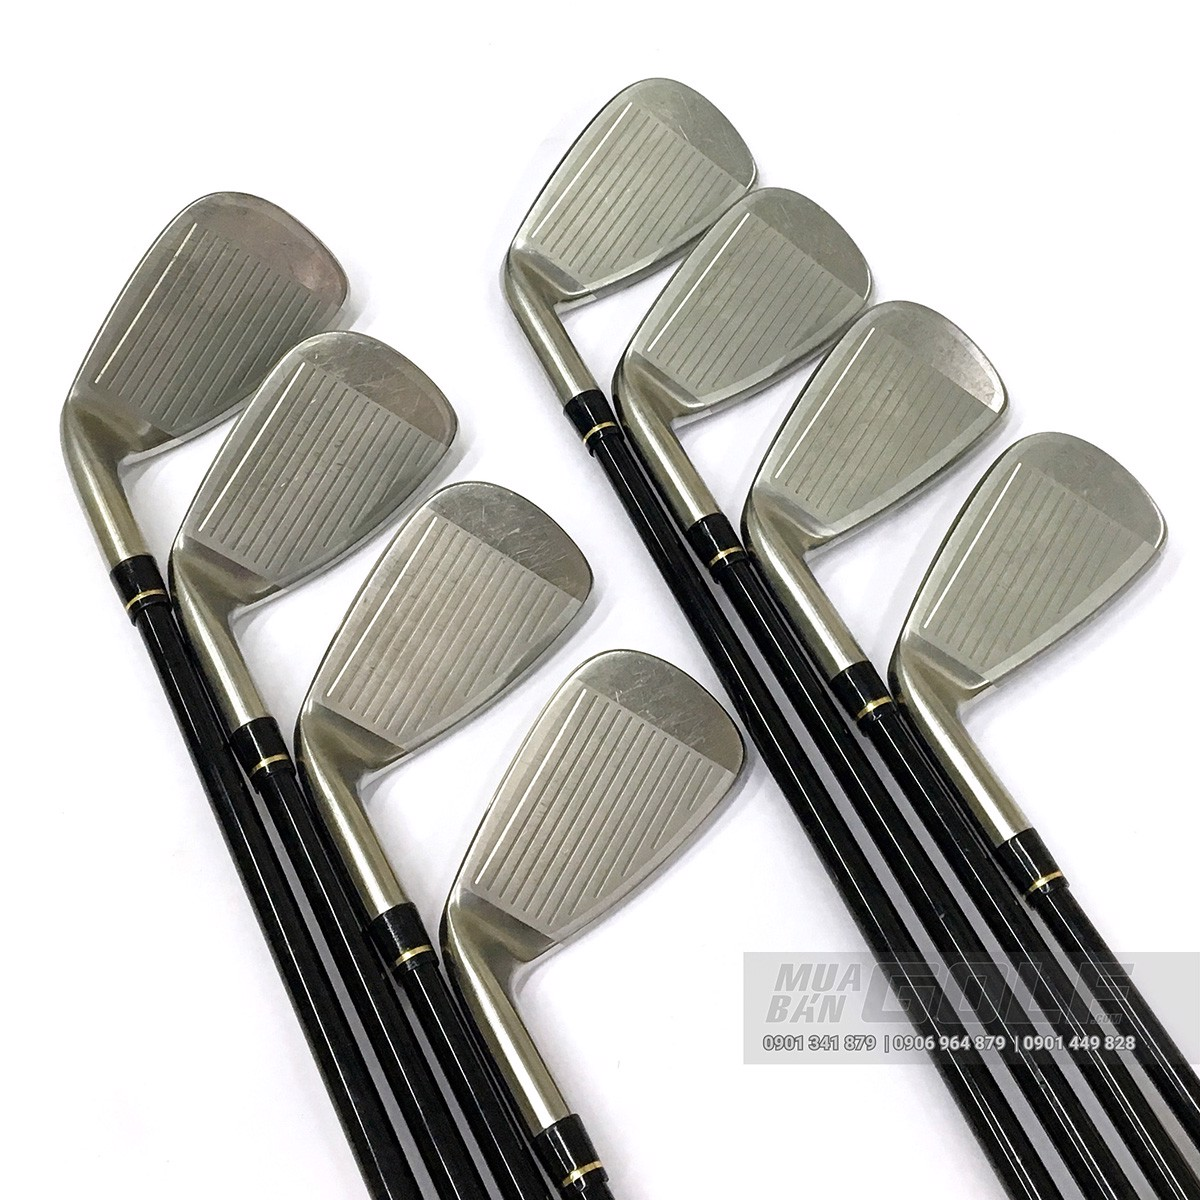 Bộ gậy golf sắt cũ HONMA AMAZING SPEC Feather & Feather R SCI HM9